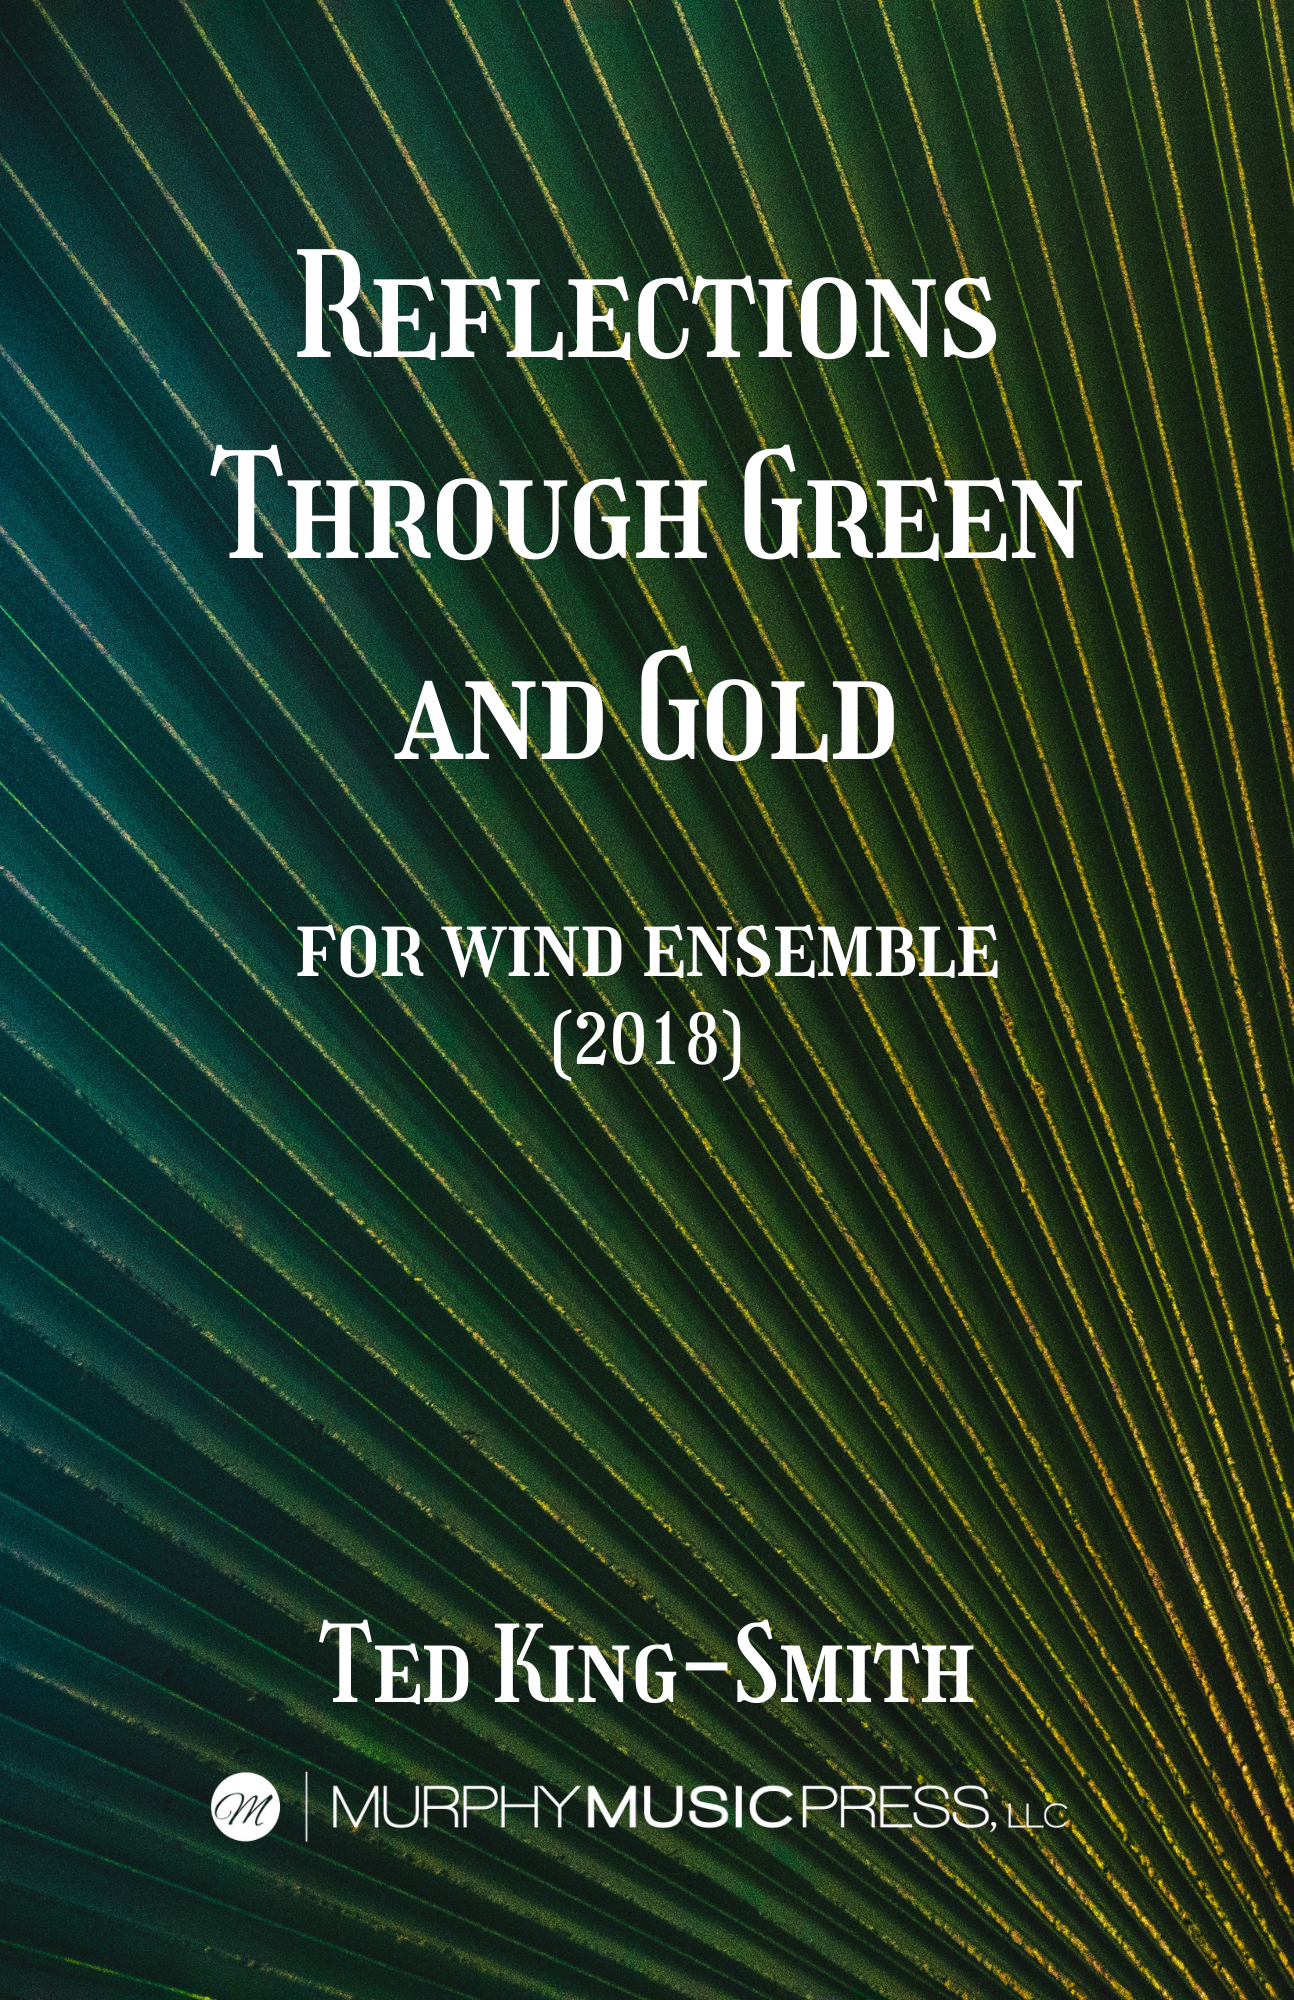 Reflections Through Green And Gold by Ted King-Smith